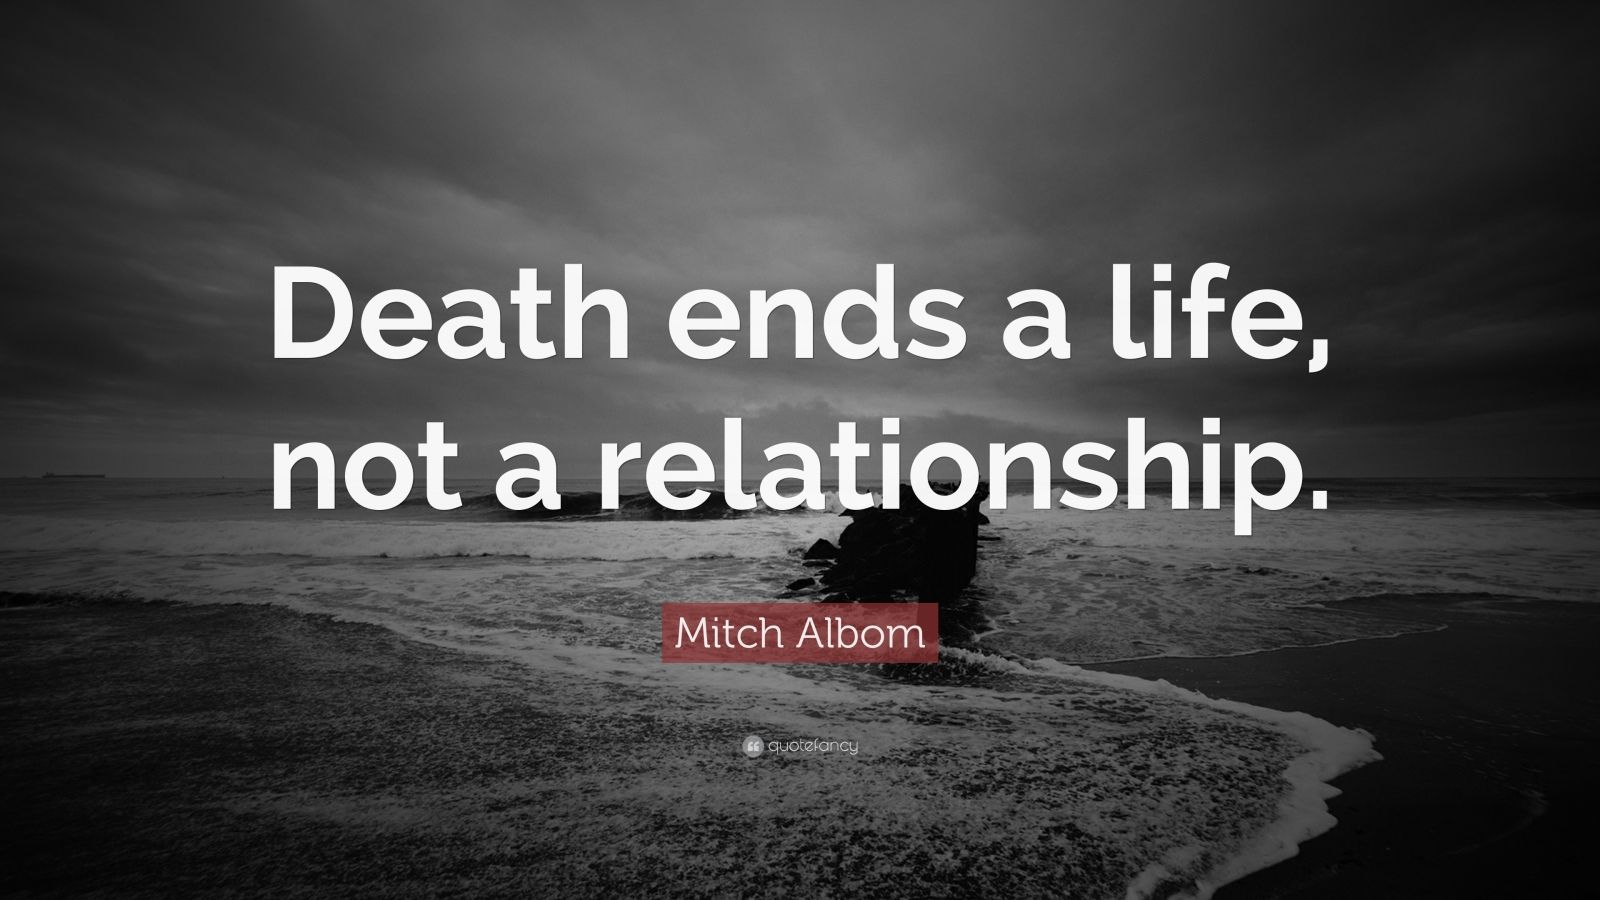 death ends a life not relationship mitch albom